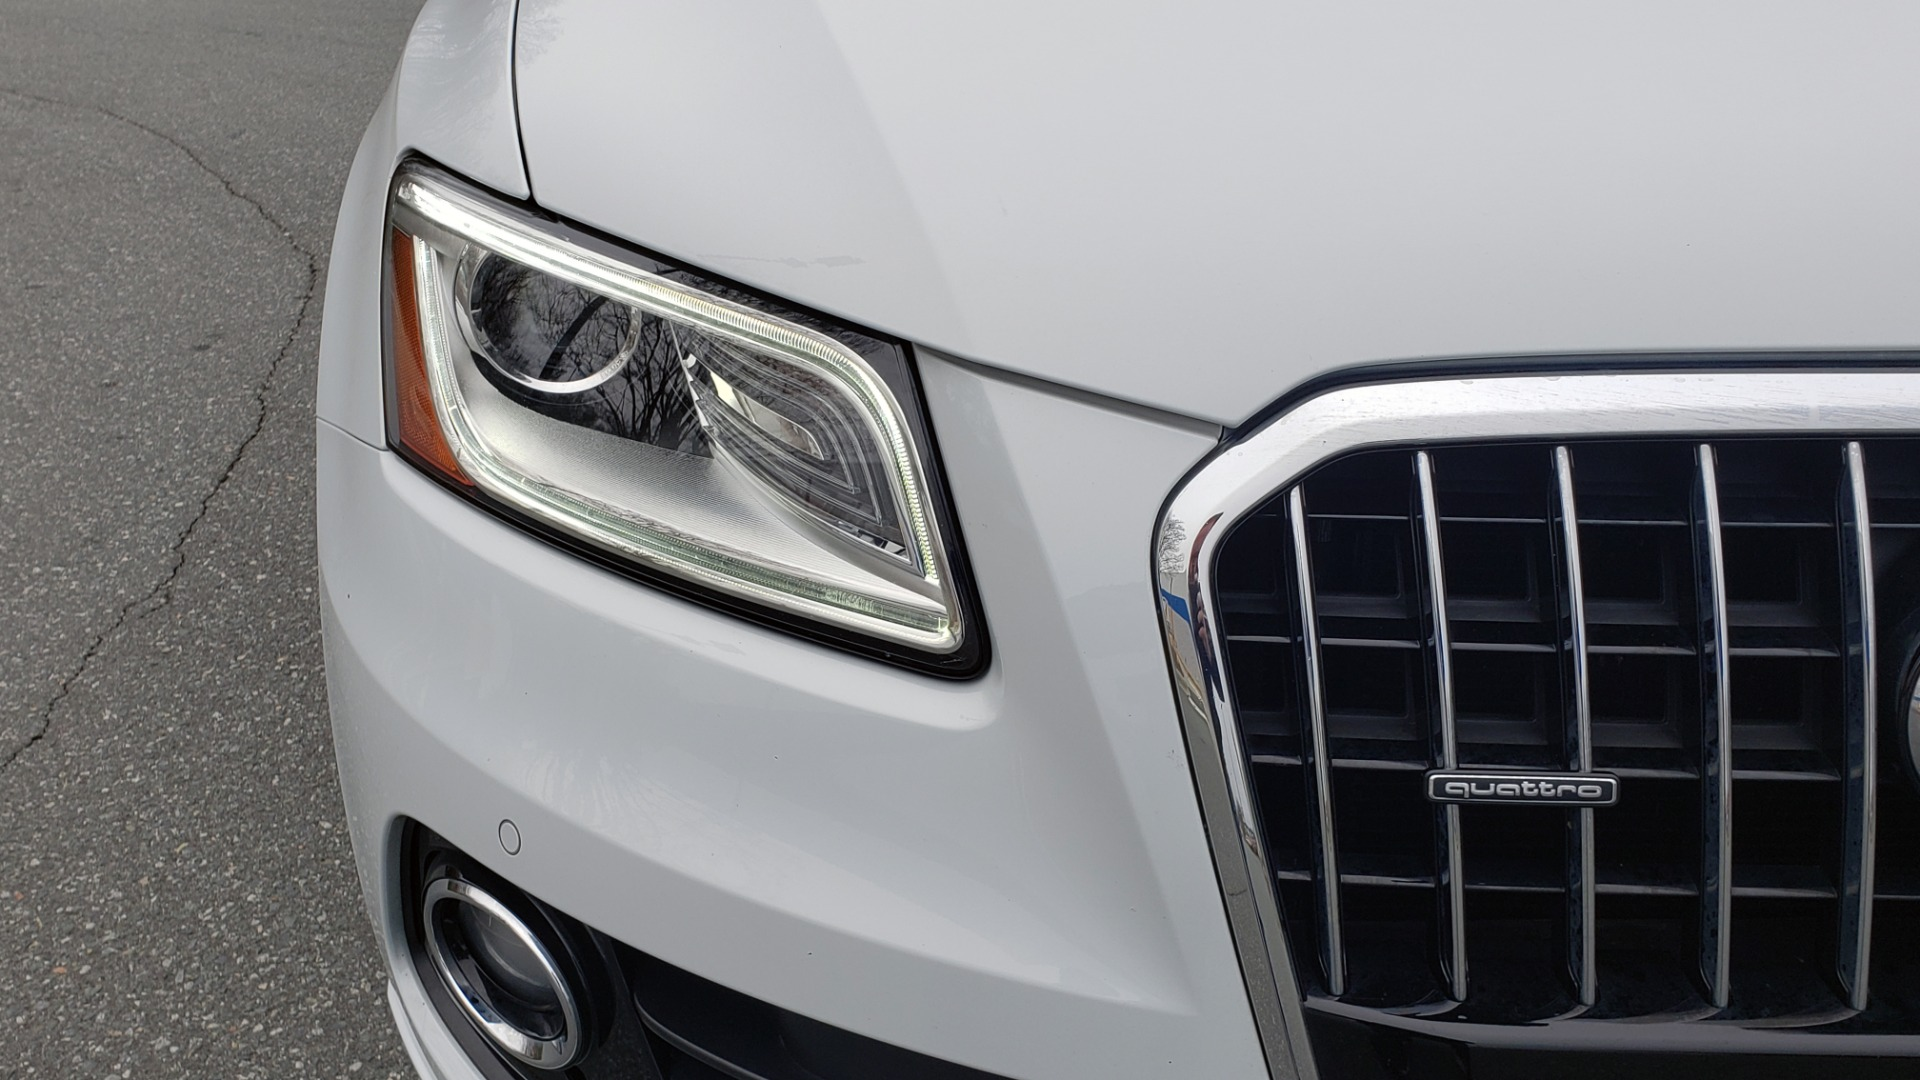 Used 2017 Audi Q5 PREMIUM PLUS / TECH / NAV / PANO-ROOF / B&O SND / REARVIEW for sale Sold at Formula Imports in Charlotte NC 28227 25